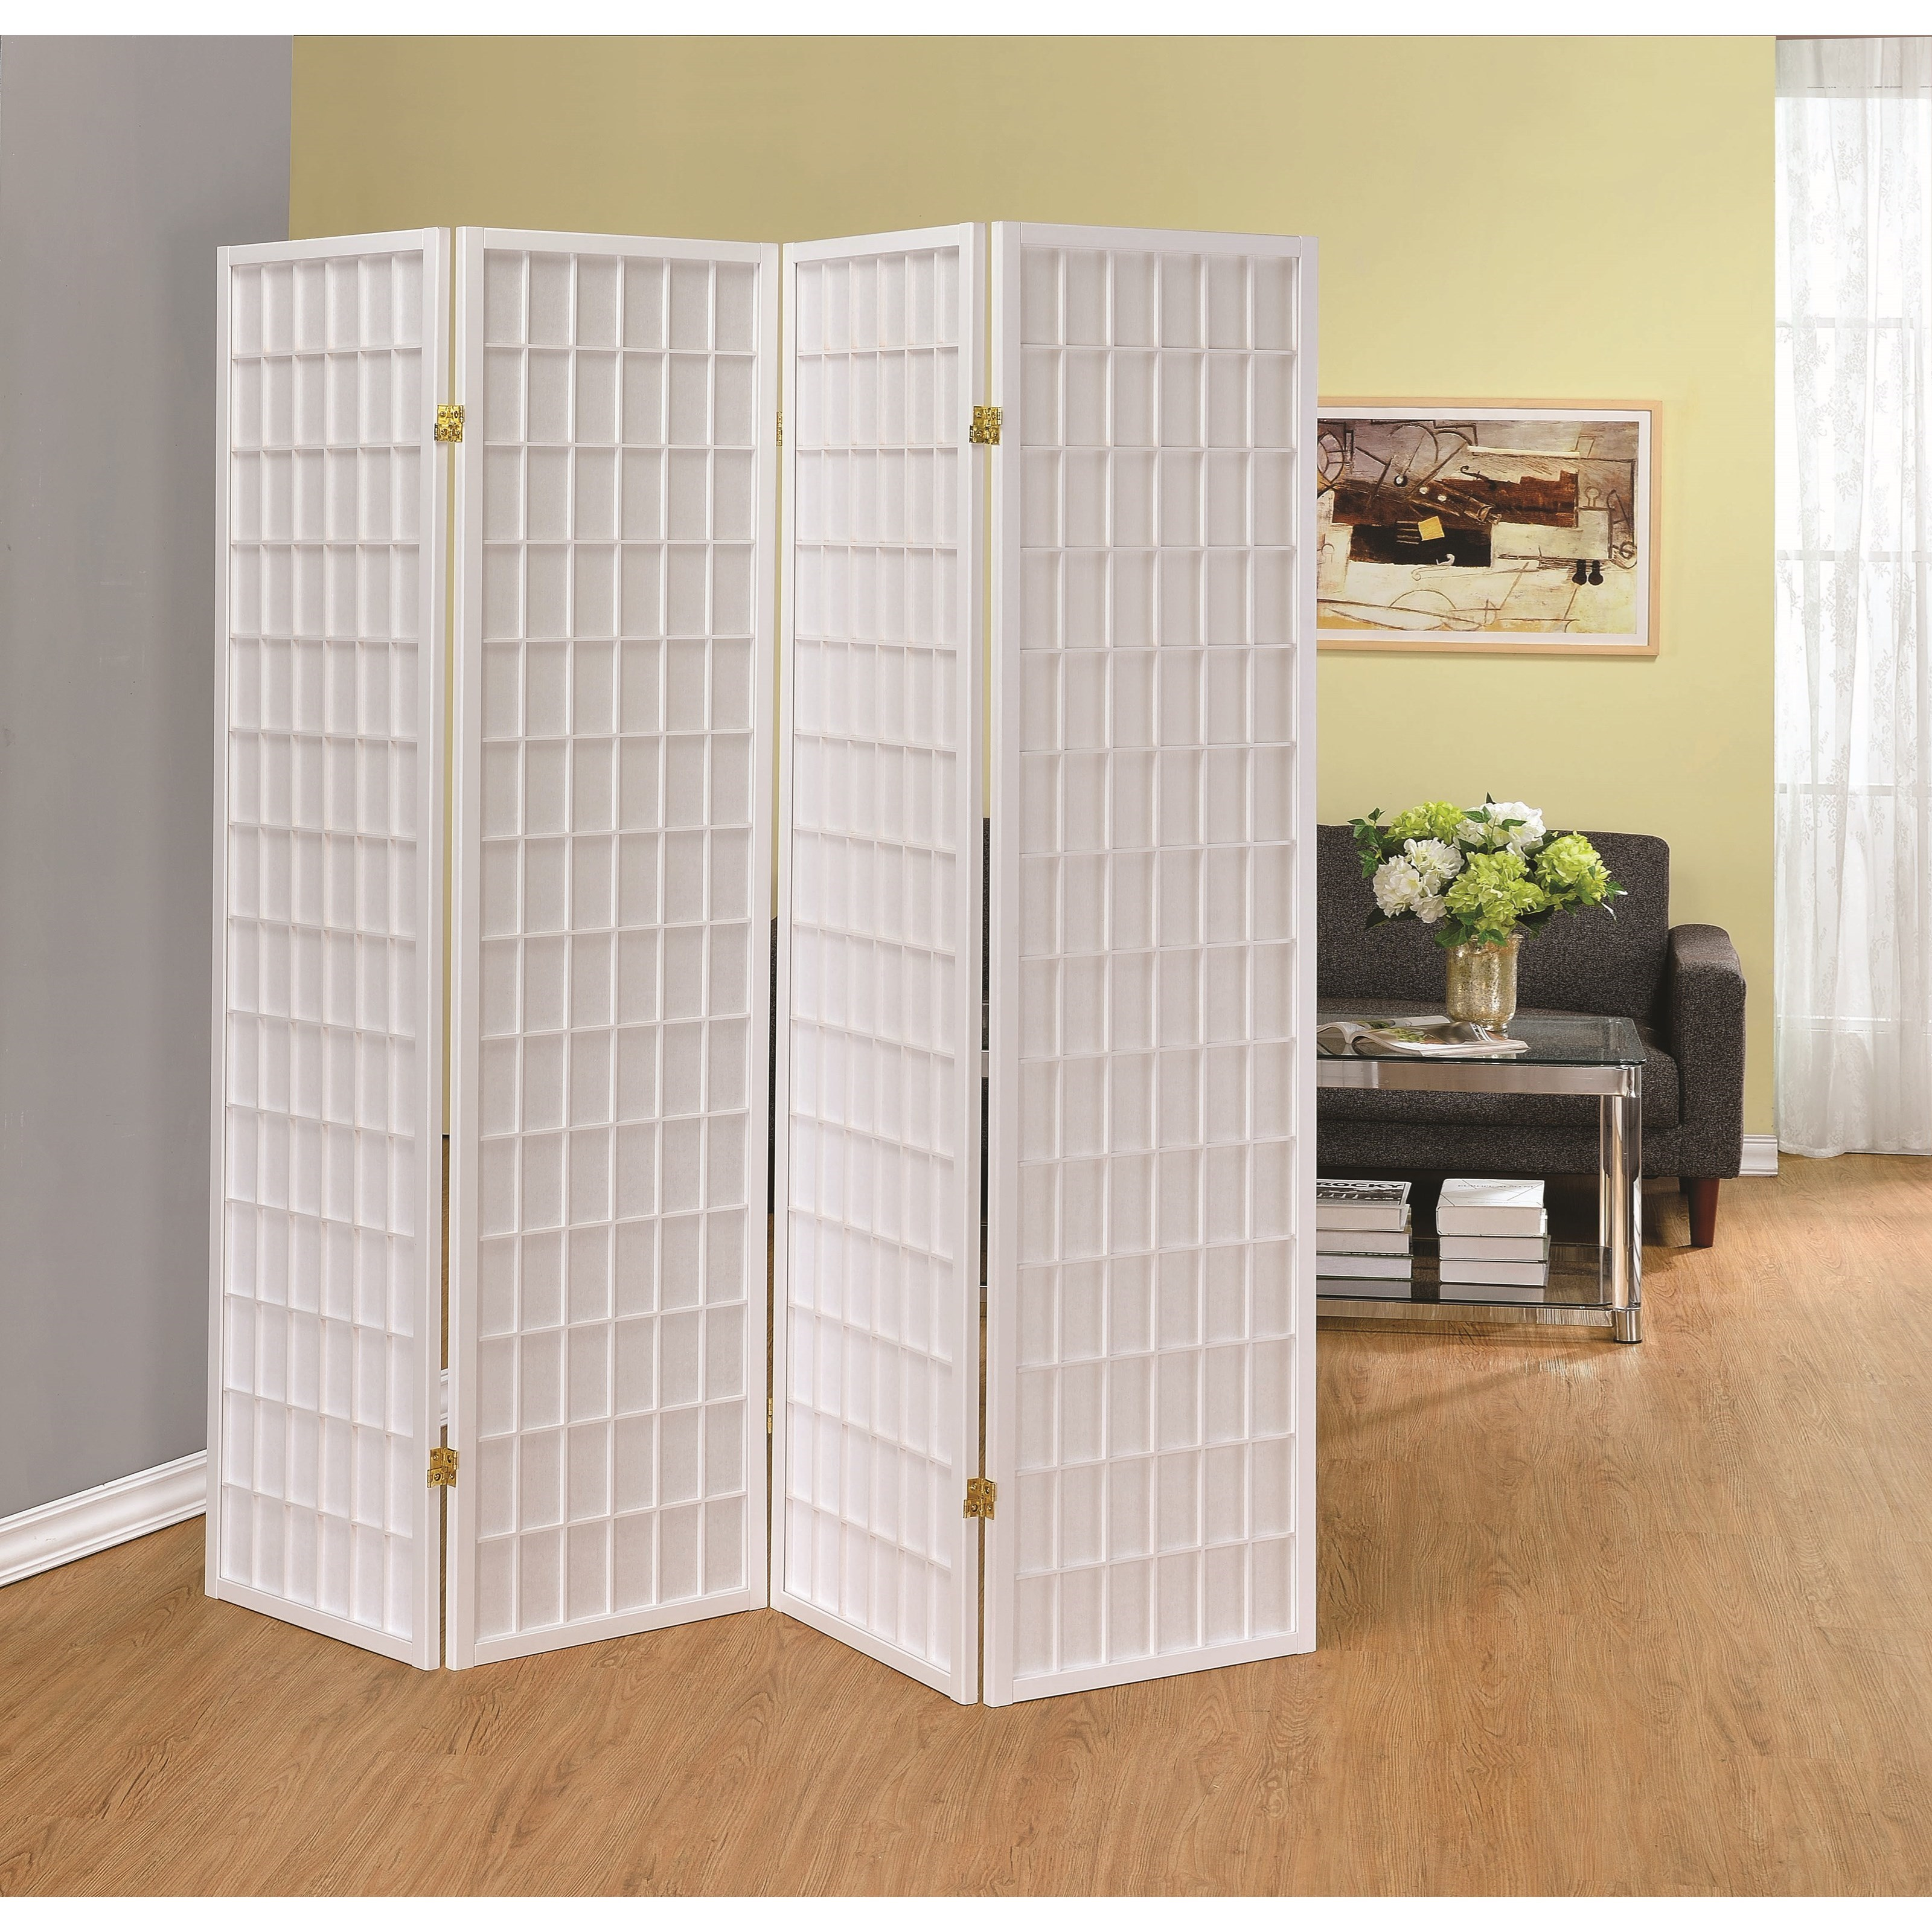 Room Divider Screens Coaster Folding Screens 902626 Four Panel White Folding